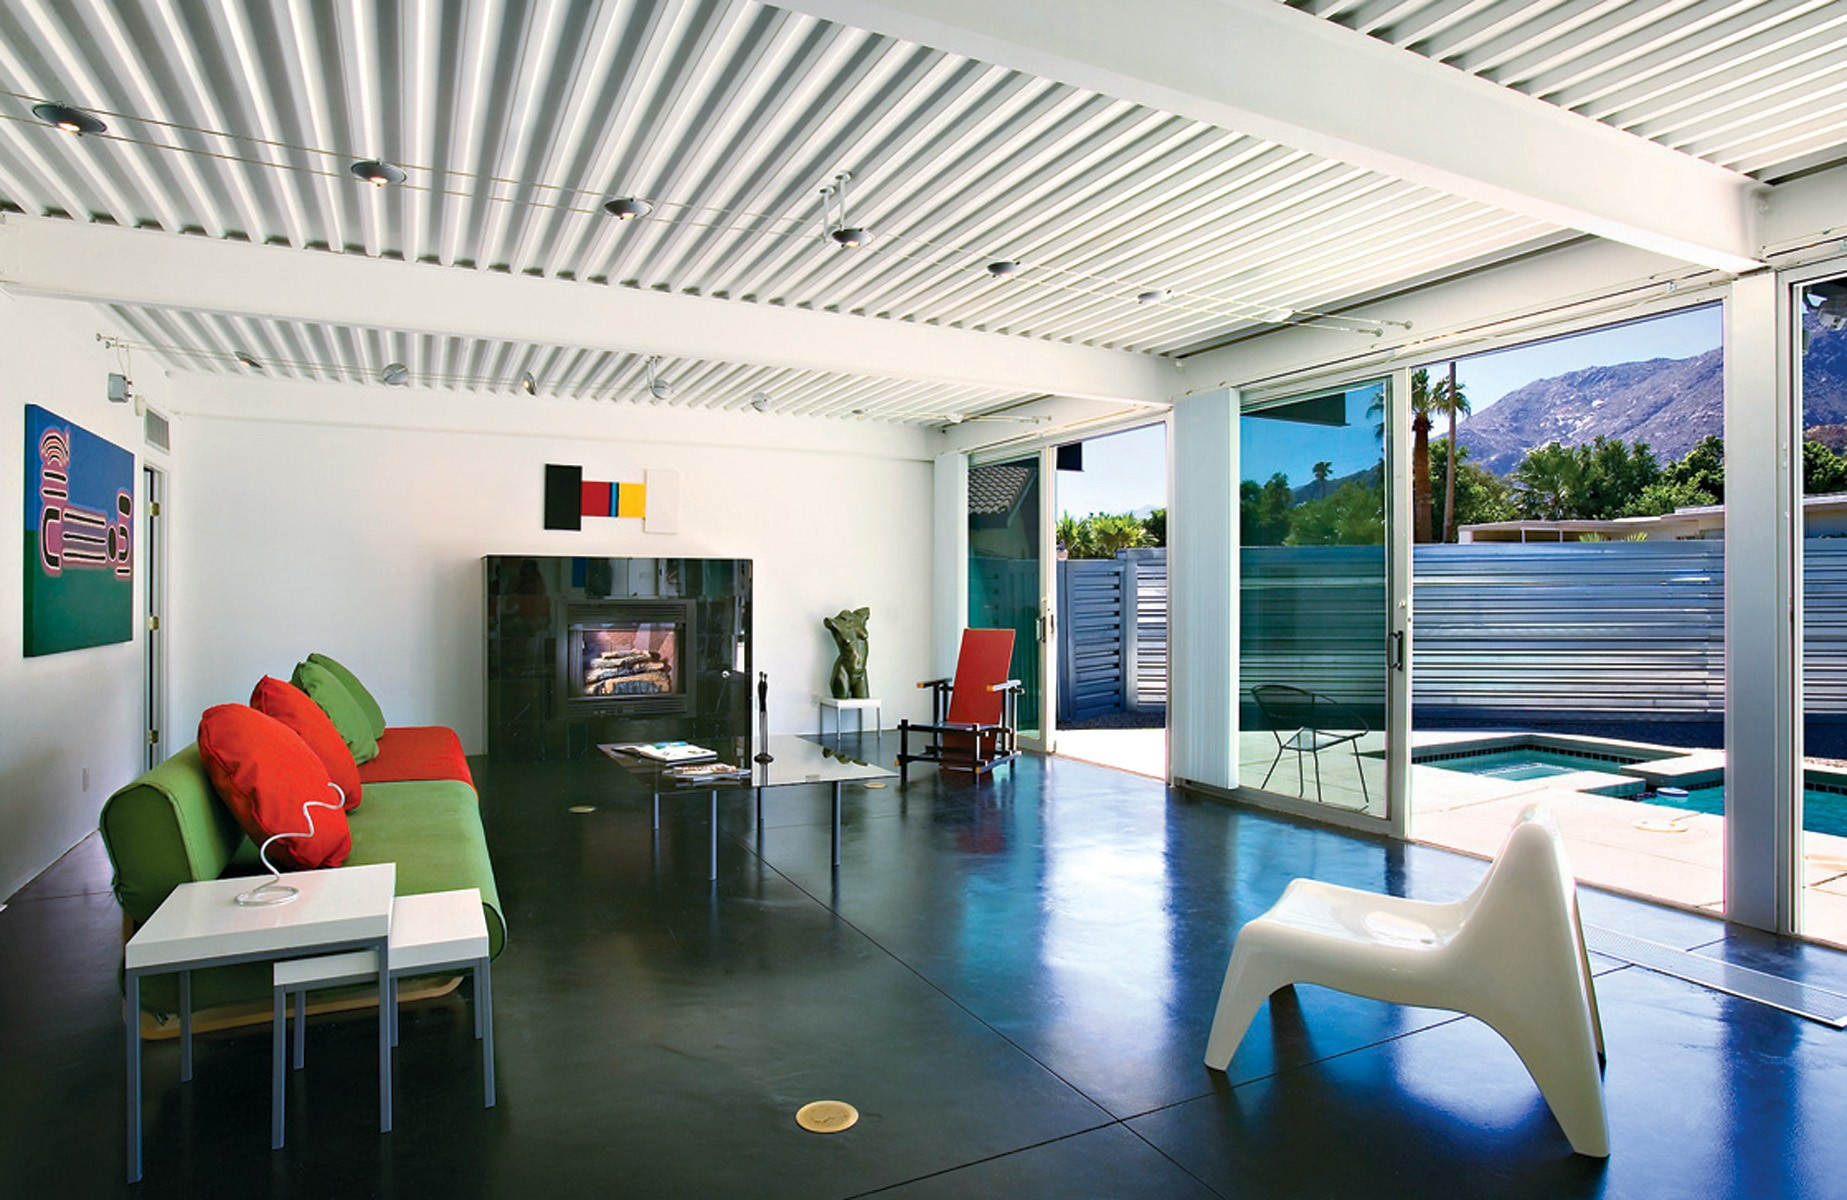 Patrick Seabol Palm Springs Modular Modernist Homes Living Room